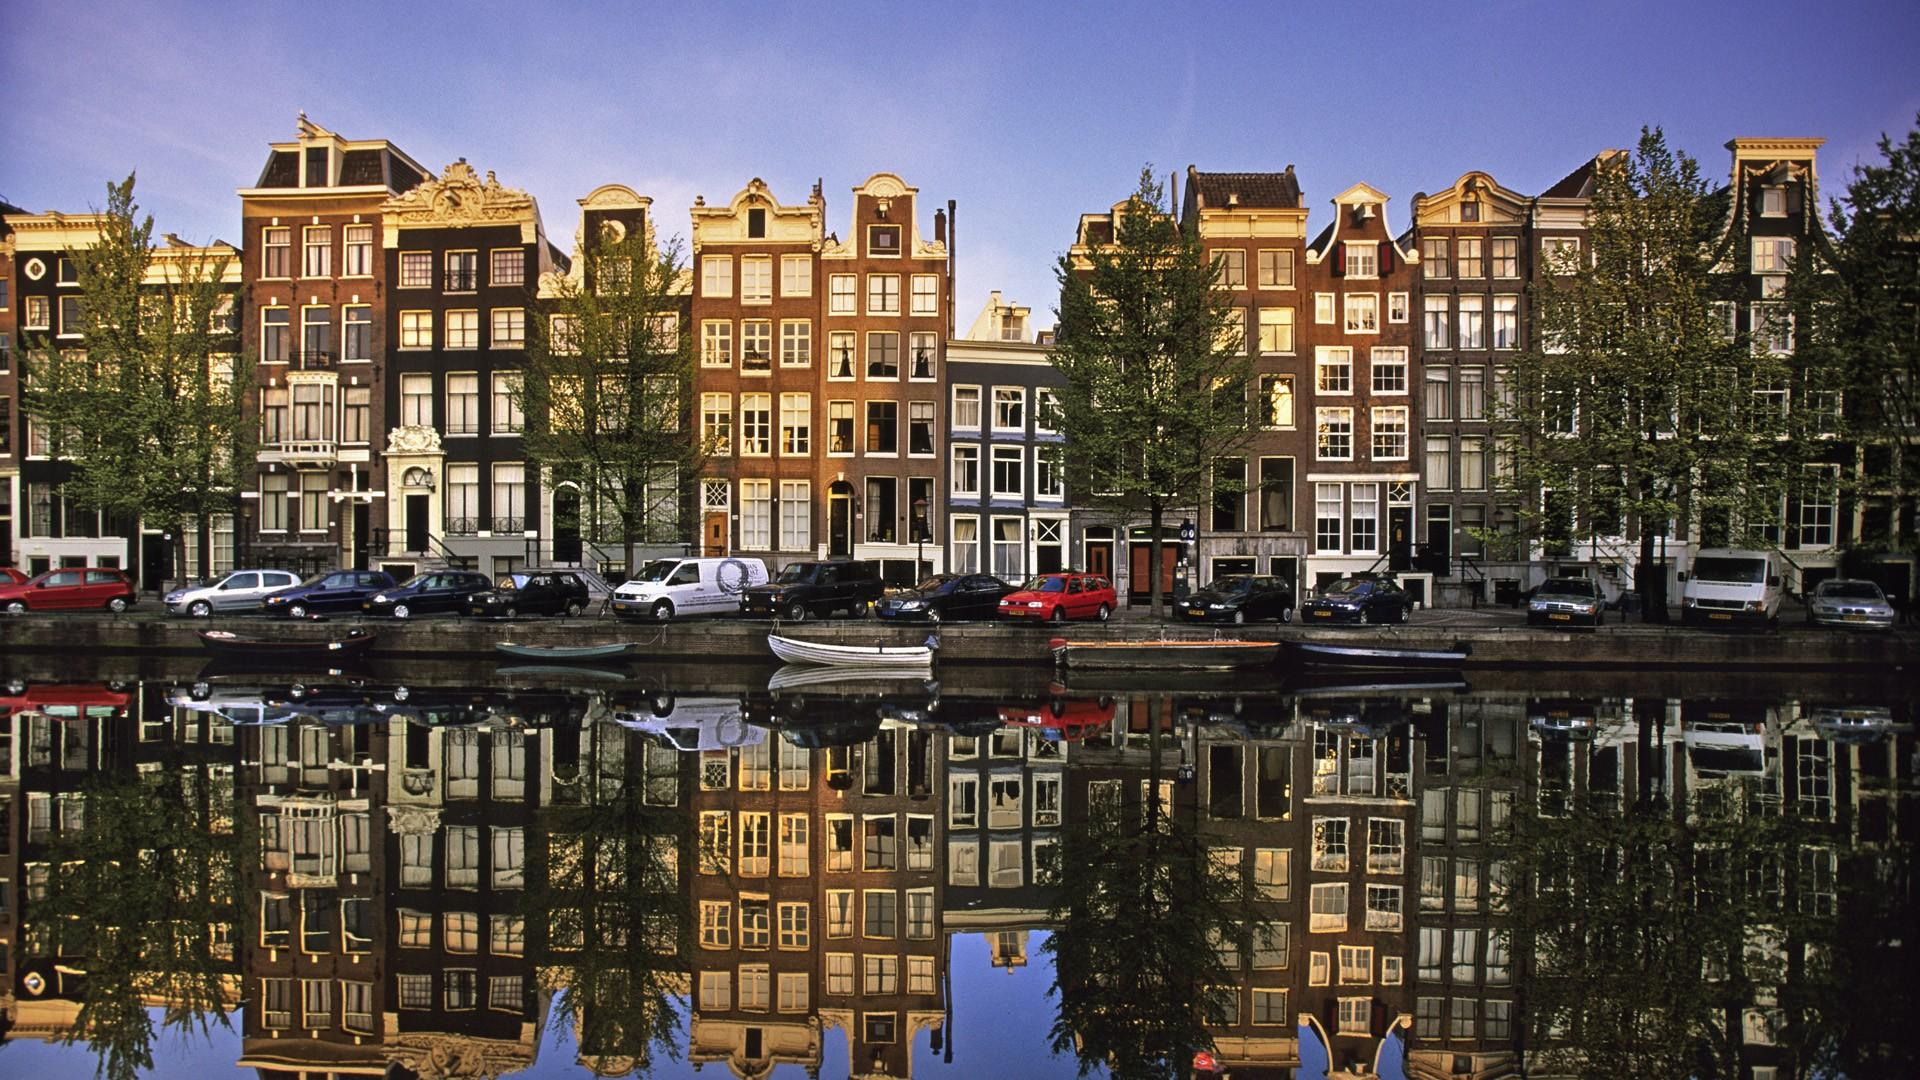 beautiful amsterdam wide hd wallpaper